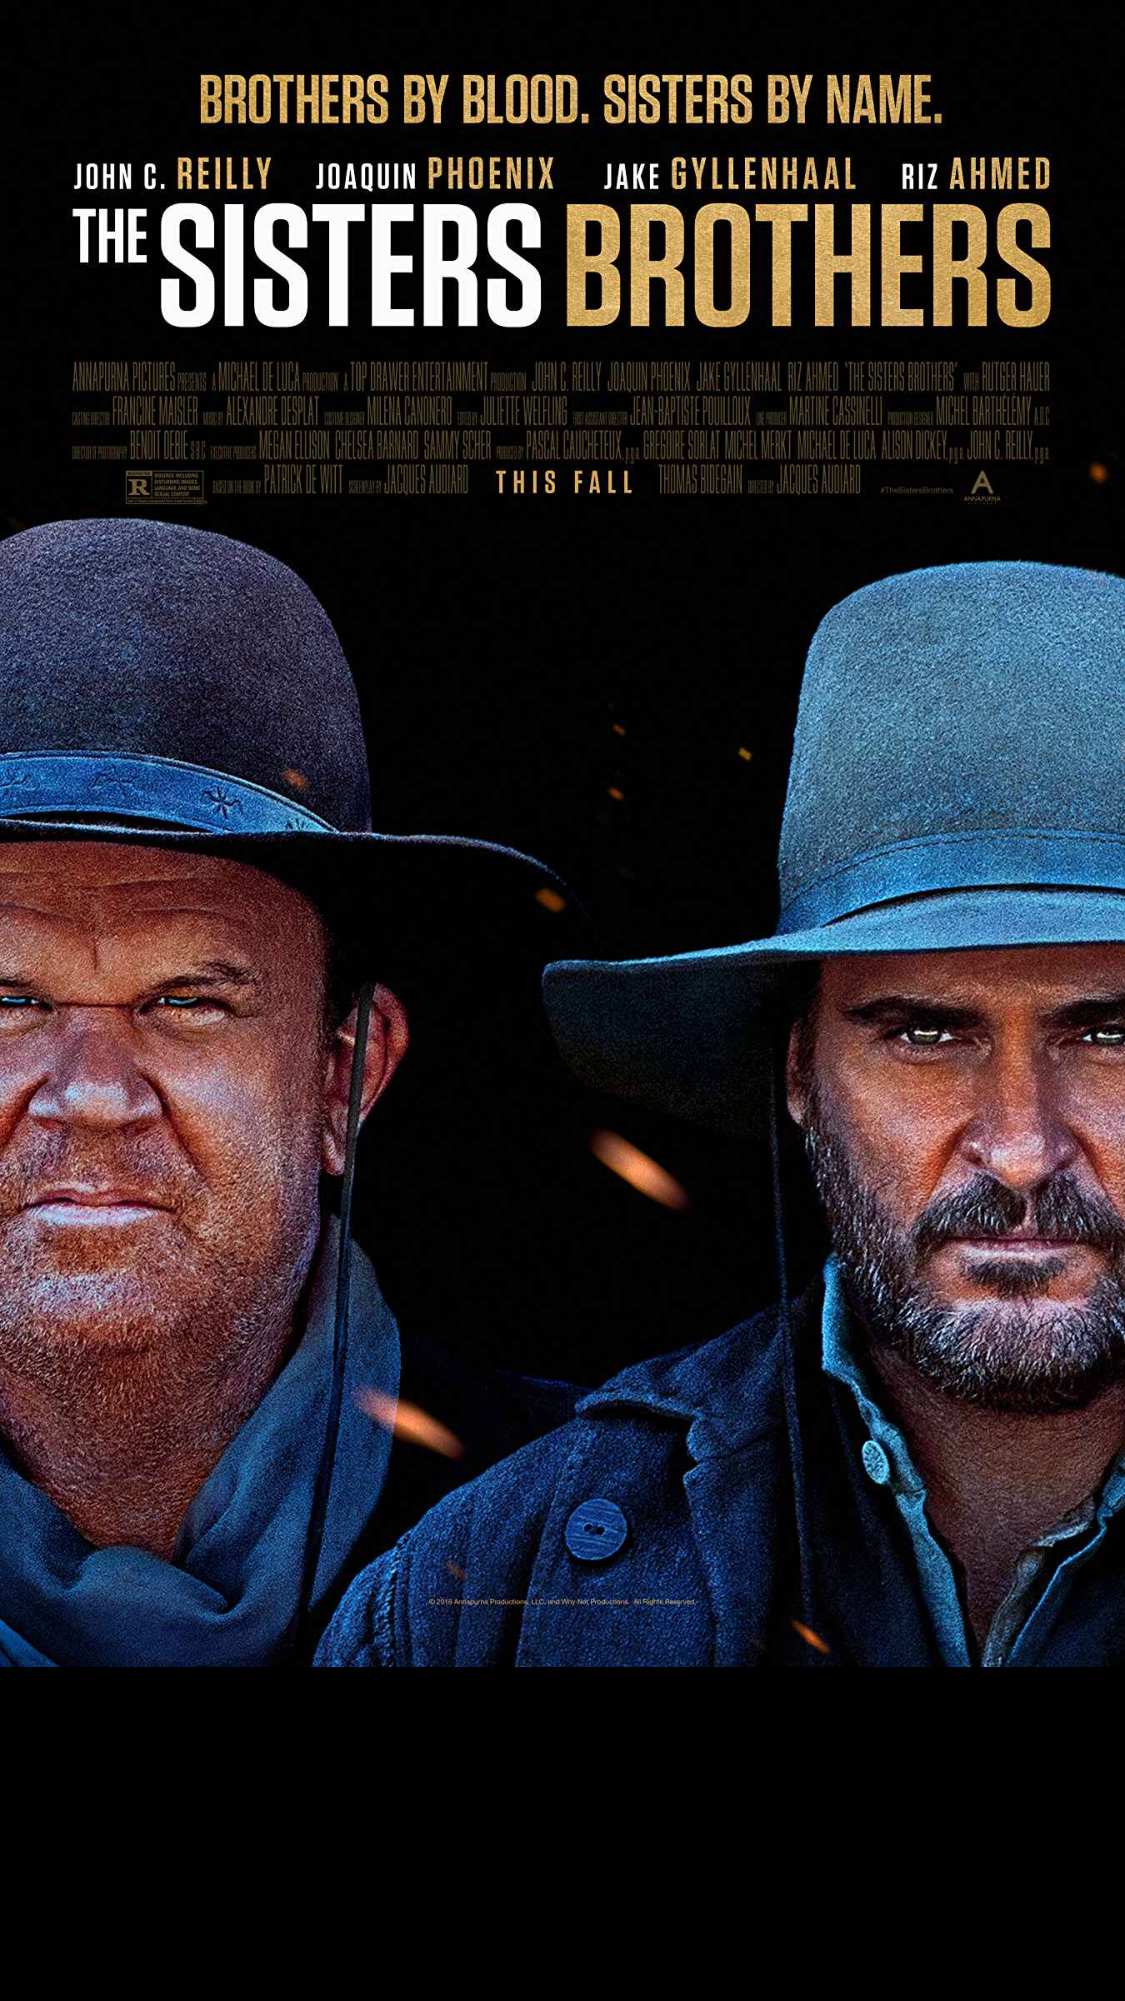 Sisters Brothers Brothers Movie Sister And Brothers Joaquin Phoenix